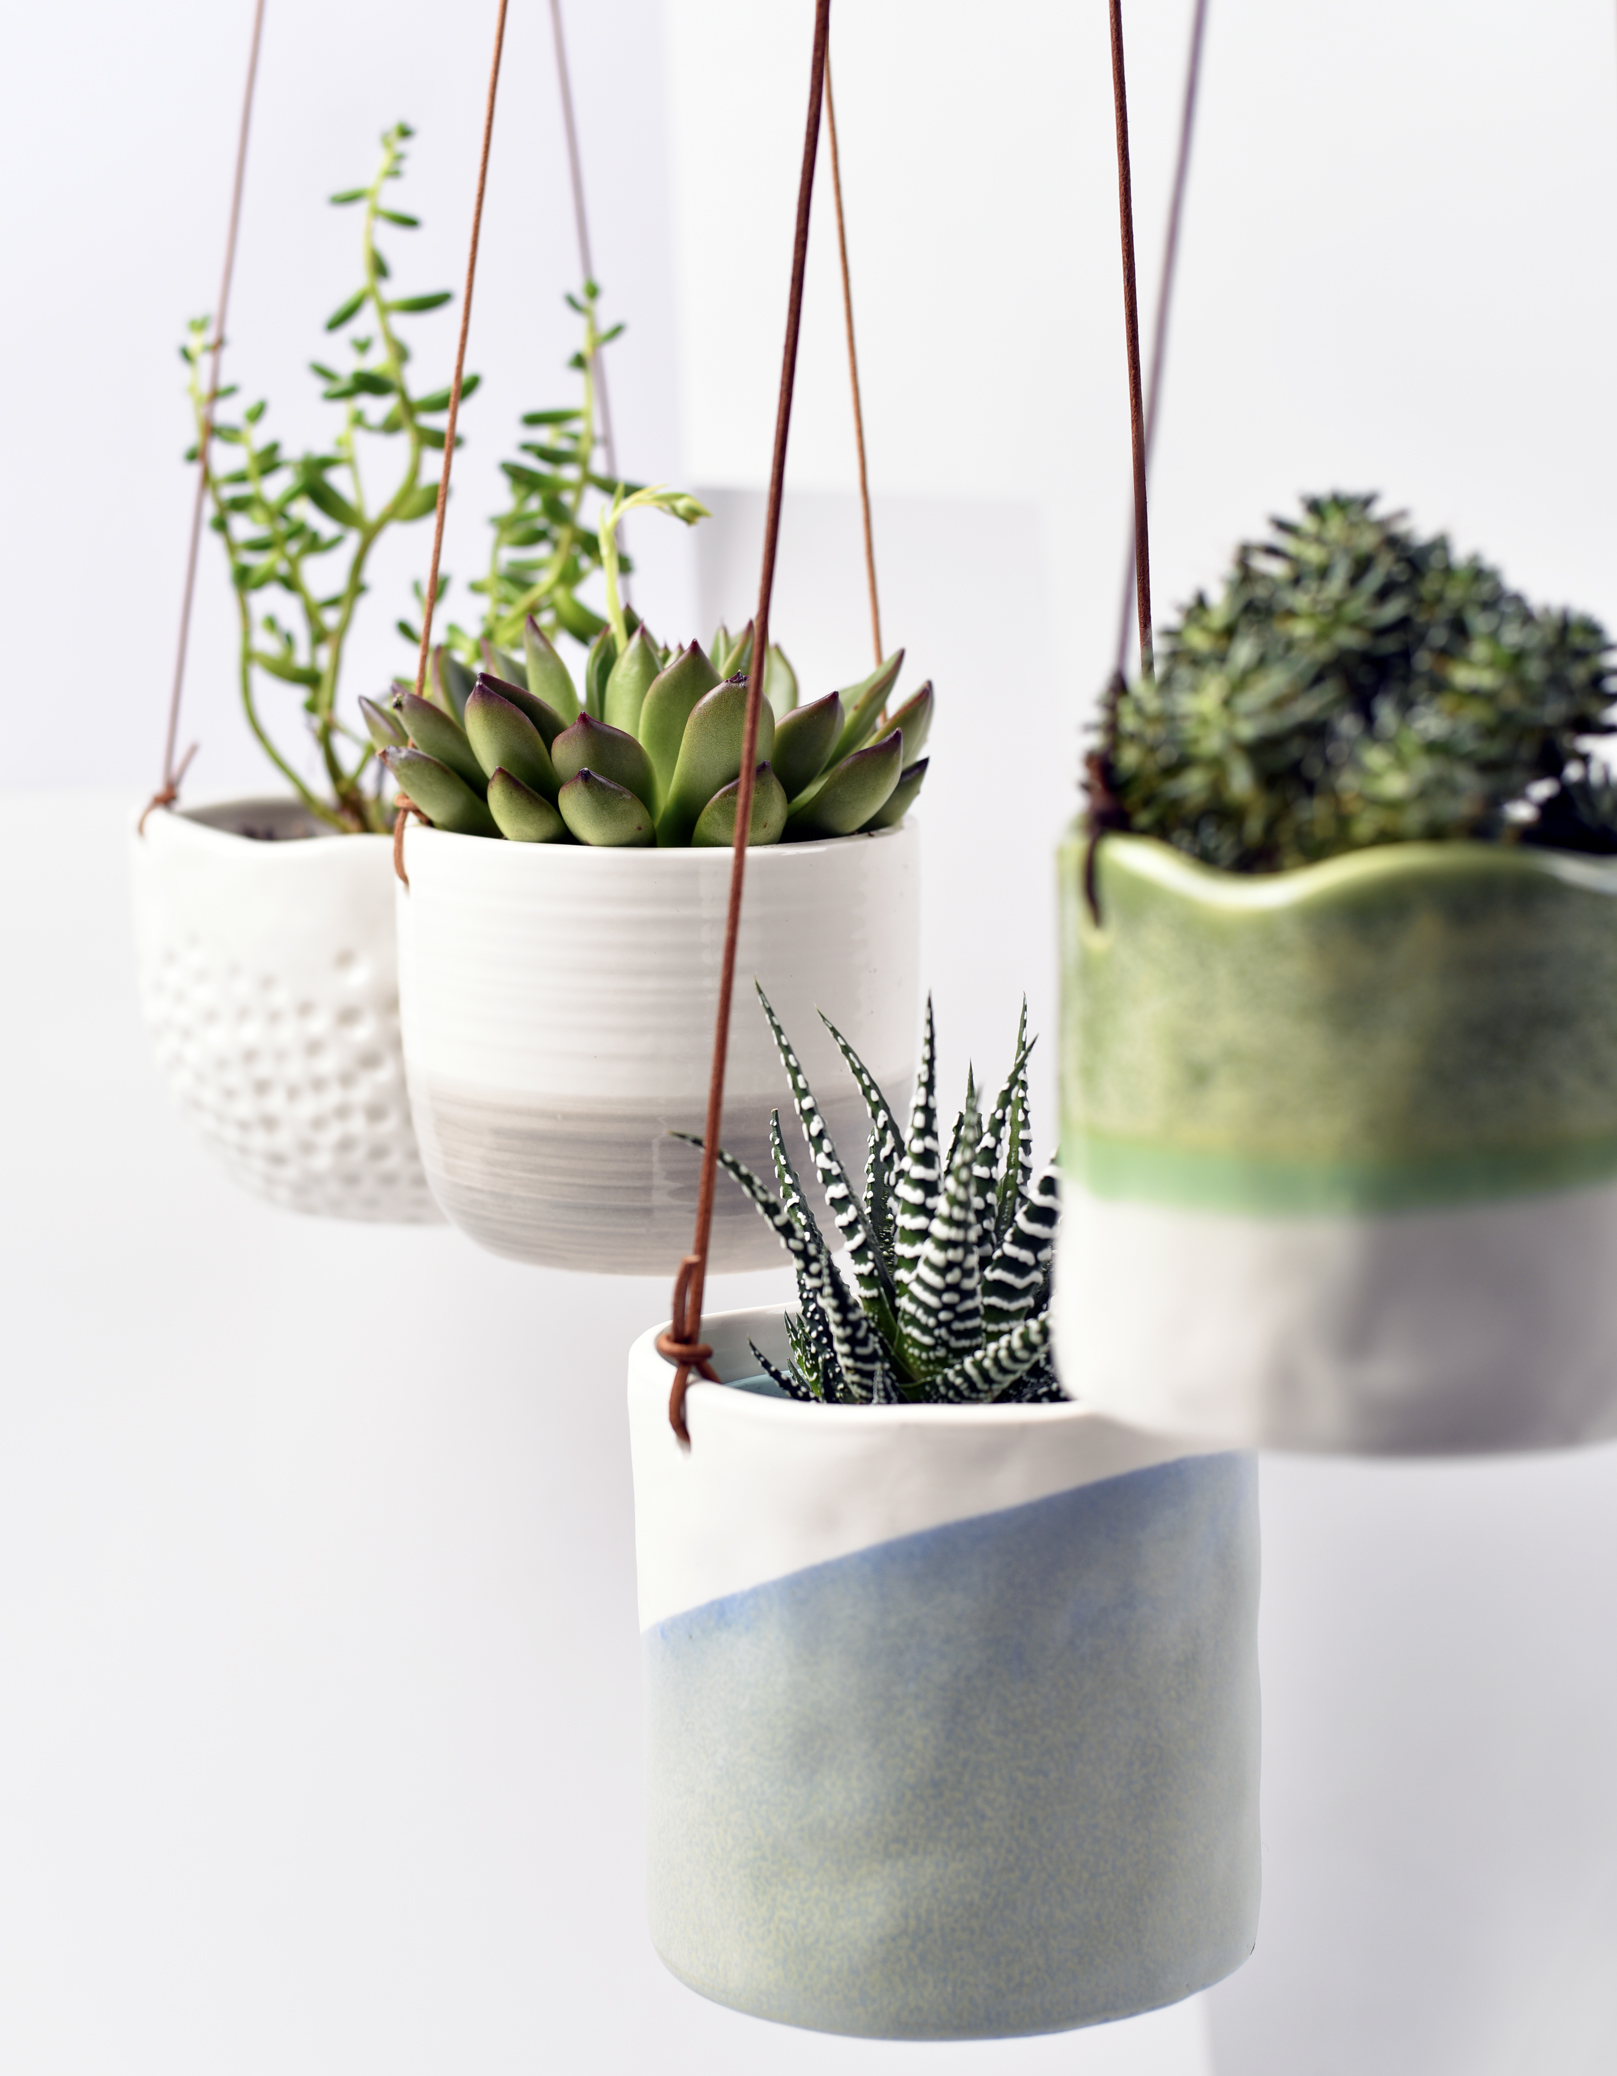 Ceramic Pots For Plants Indoor 10 Gardening Trends Set To Blossom In 2018 Tv3 Xposé